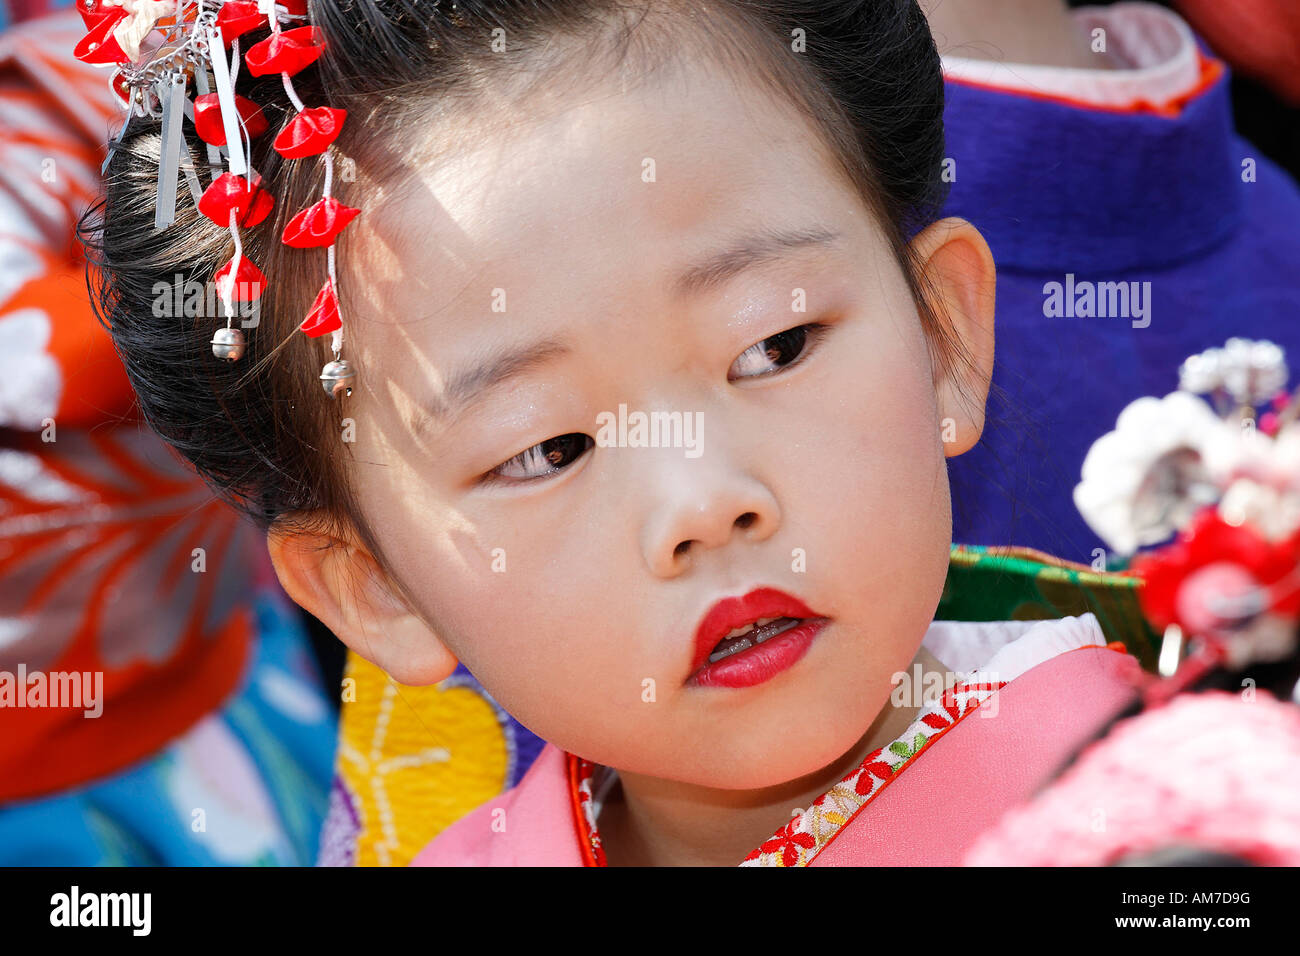 Little Japanese girl with made-up mouth, Japan fair, Duesseldorf, NRW, Germany - Stock Image